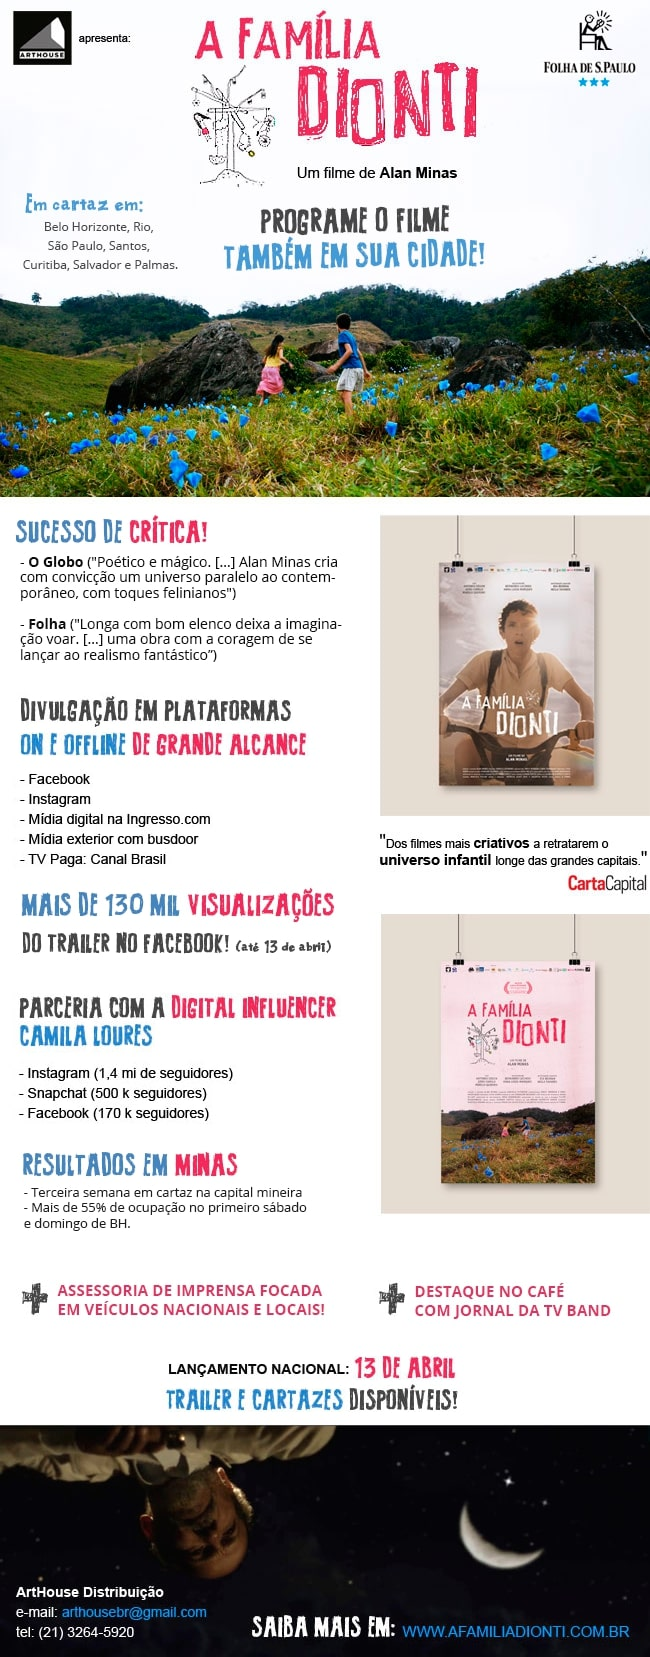 Família Dionti - Design e-mail marketing